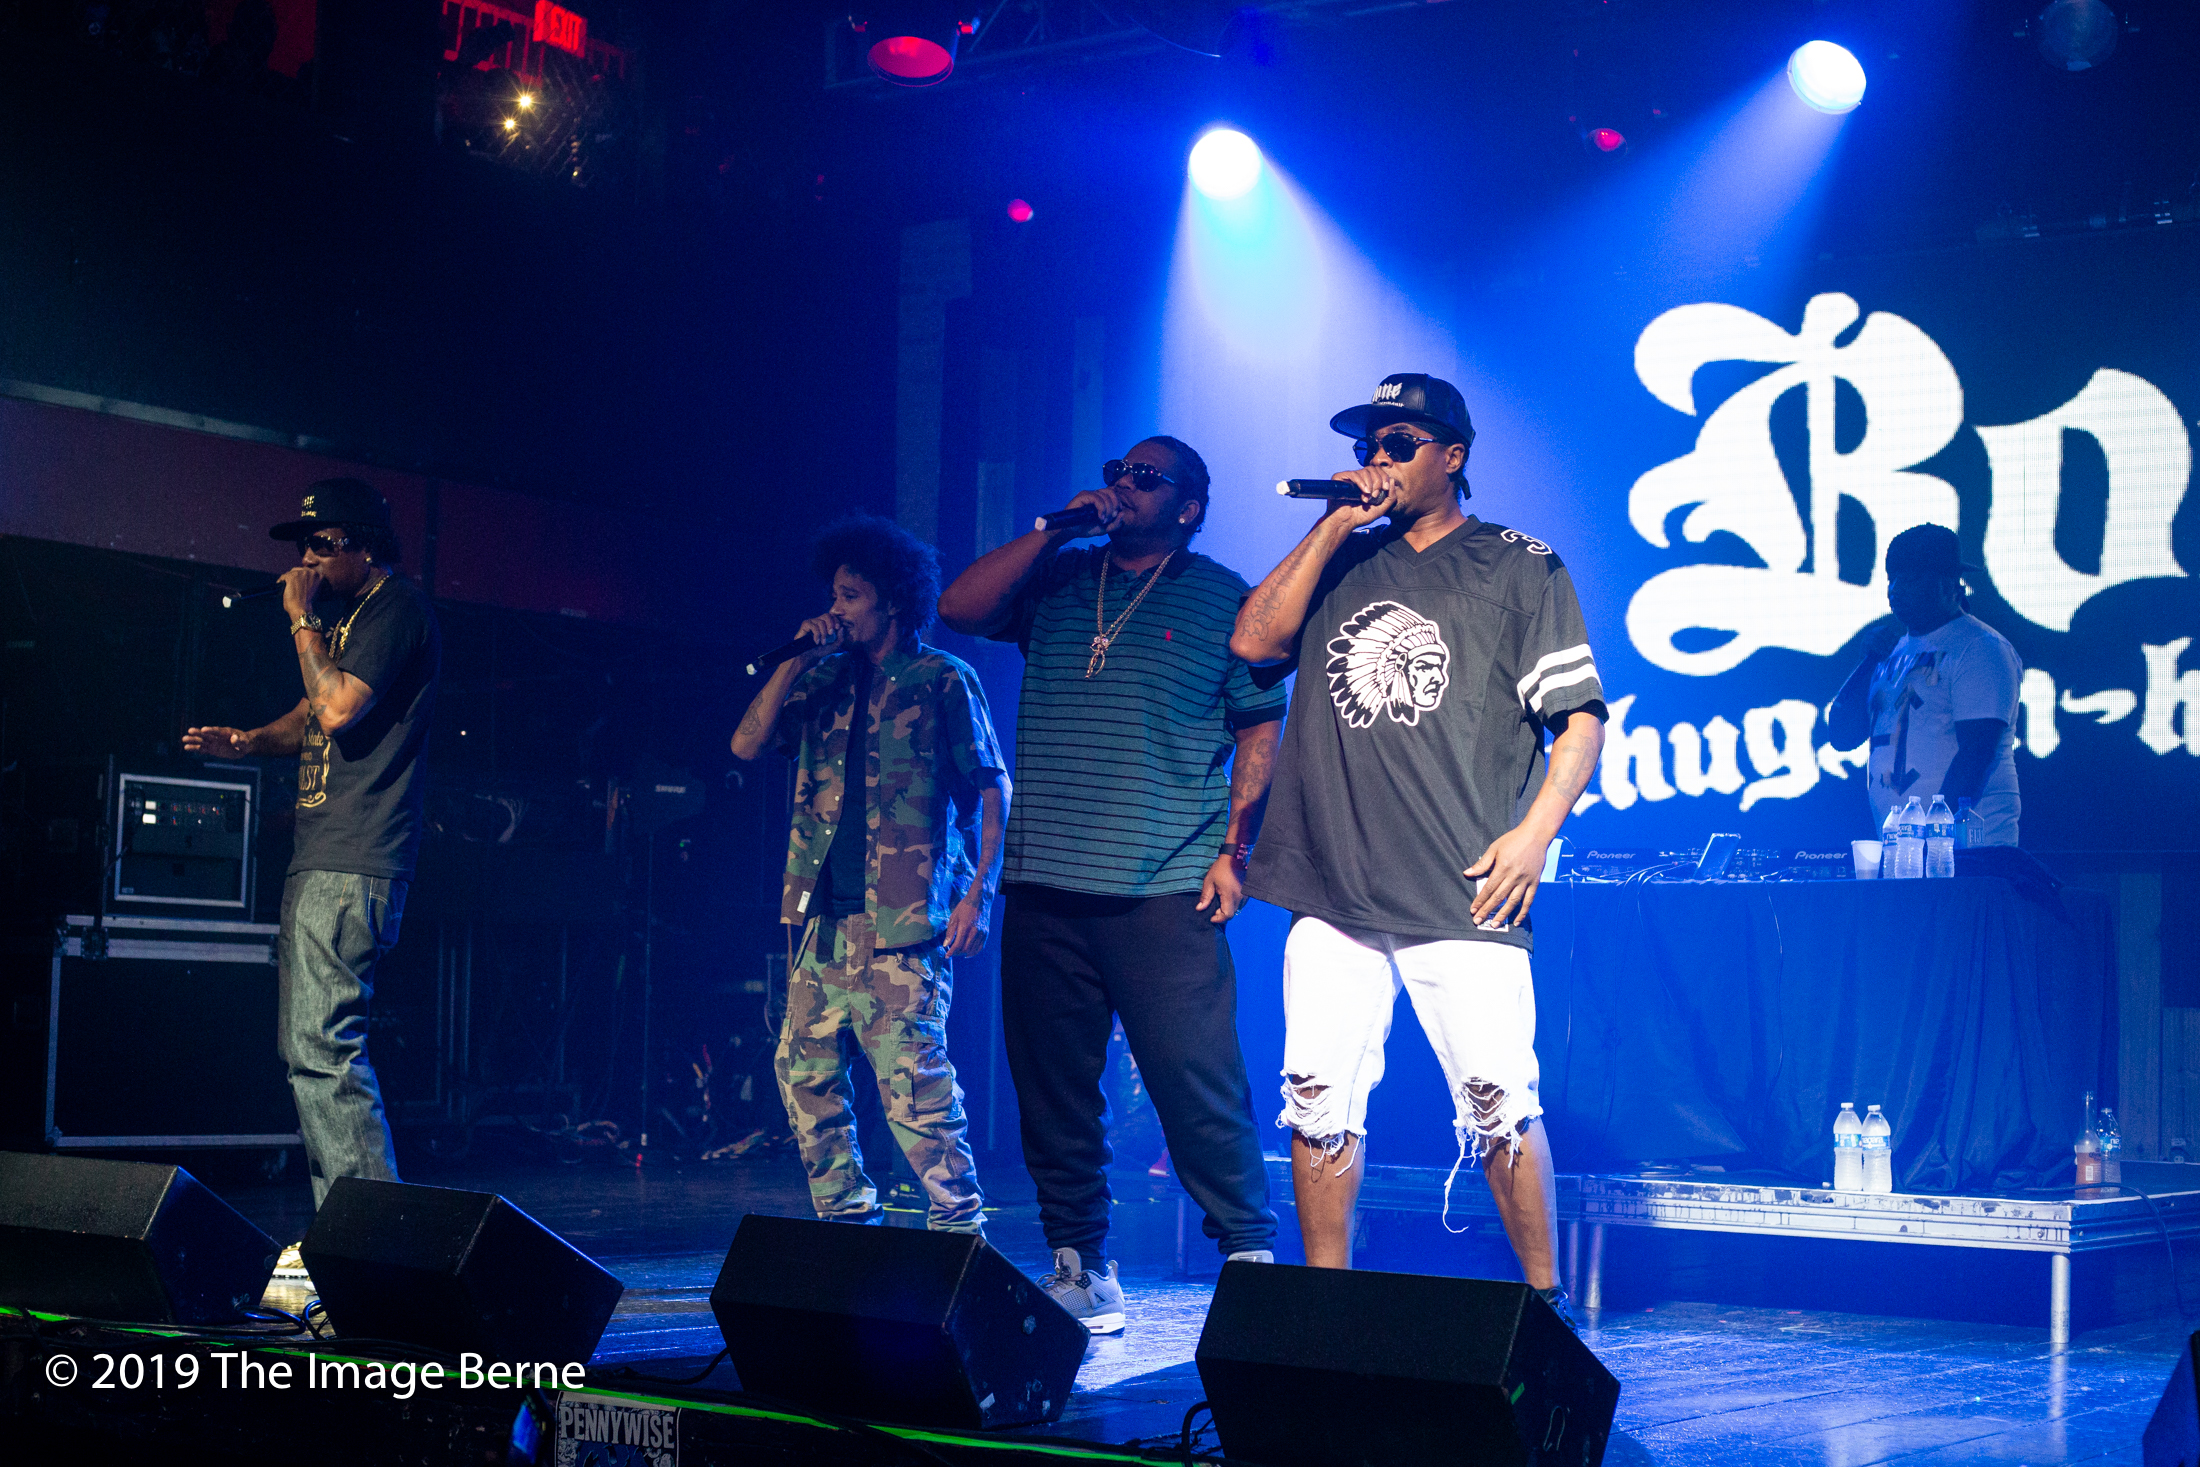 Krayzie Bone, Wish Bone, Flesh-N-Bone, Layzie Bone, and Bizzy Bone-085.jpg